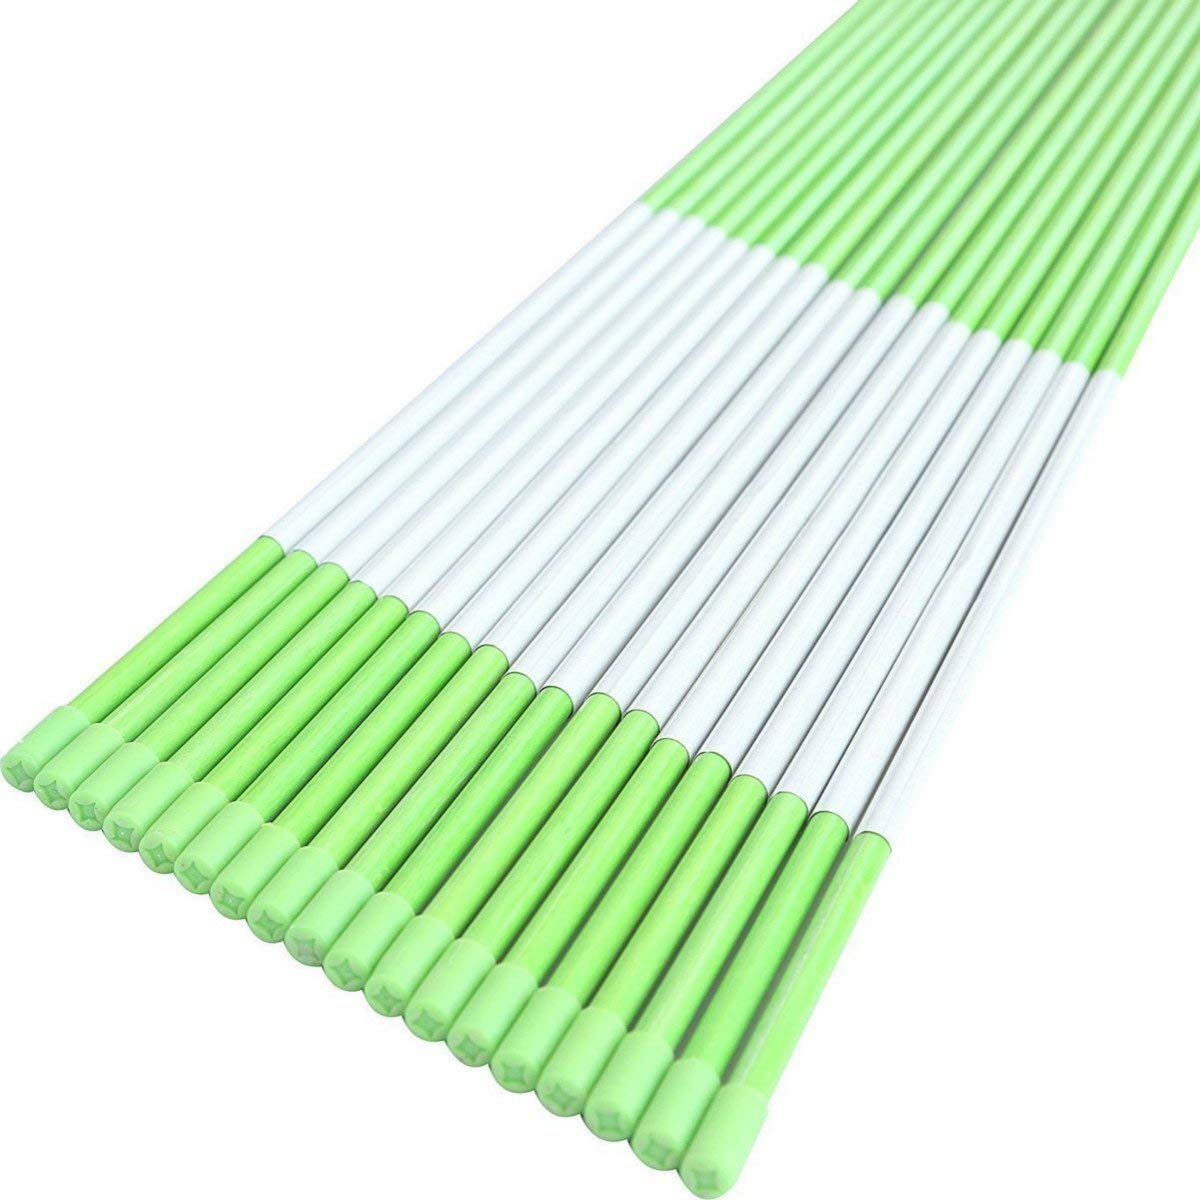 FiberMarker 48-Inch Reflective Driveway Markers Driveway Poles for Easy Visibility at Night 1/4 Inch Diameter Green, 50 Pack